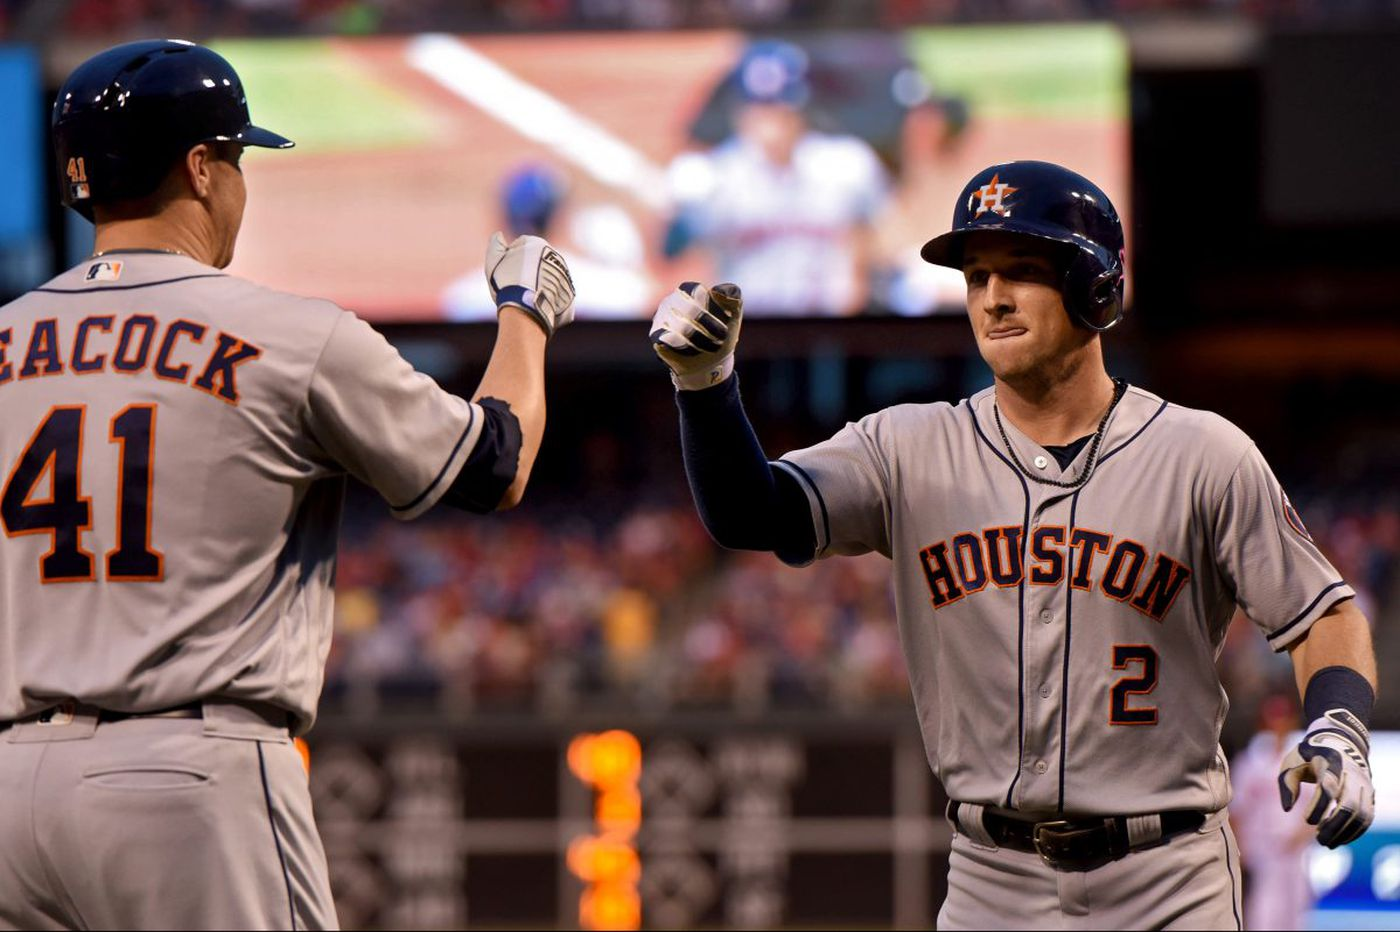 Difficult to envision Phillies rising to Astros' level anytime soon